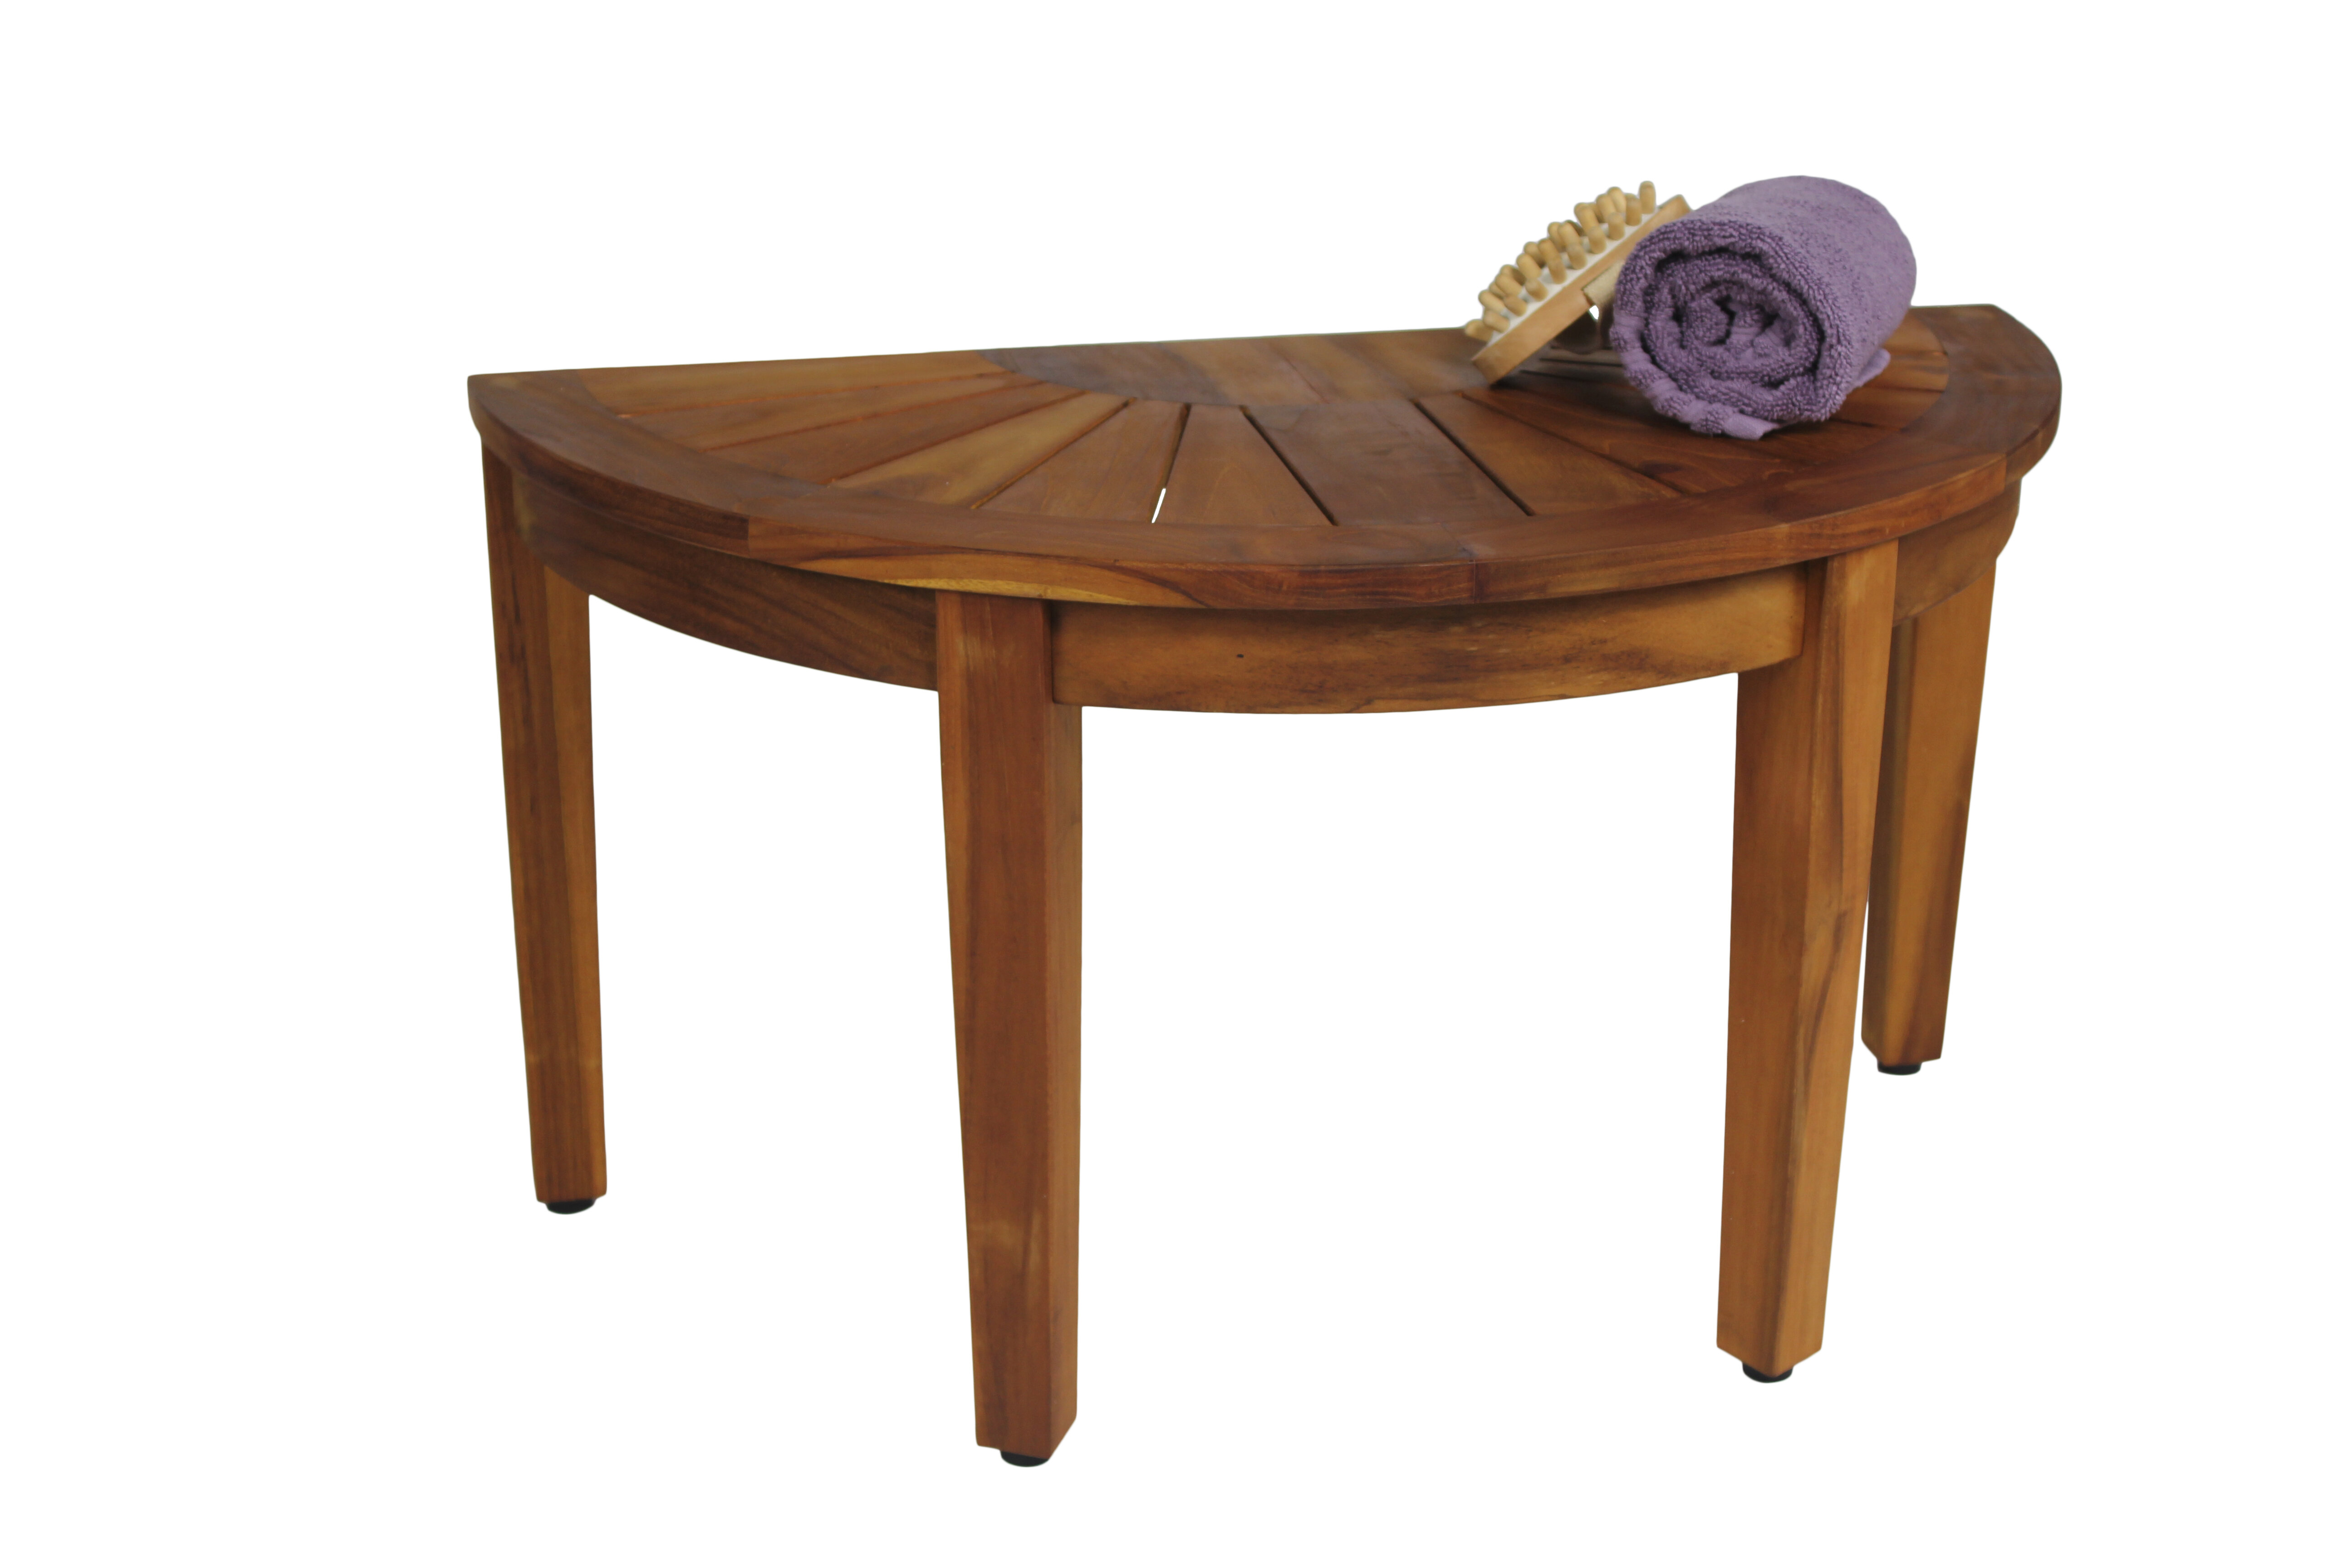 caddy sofi today stool bedding solid shower bath product free in bare decor teak shipping wood overstock